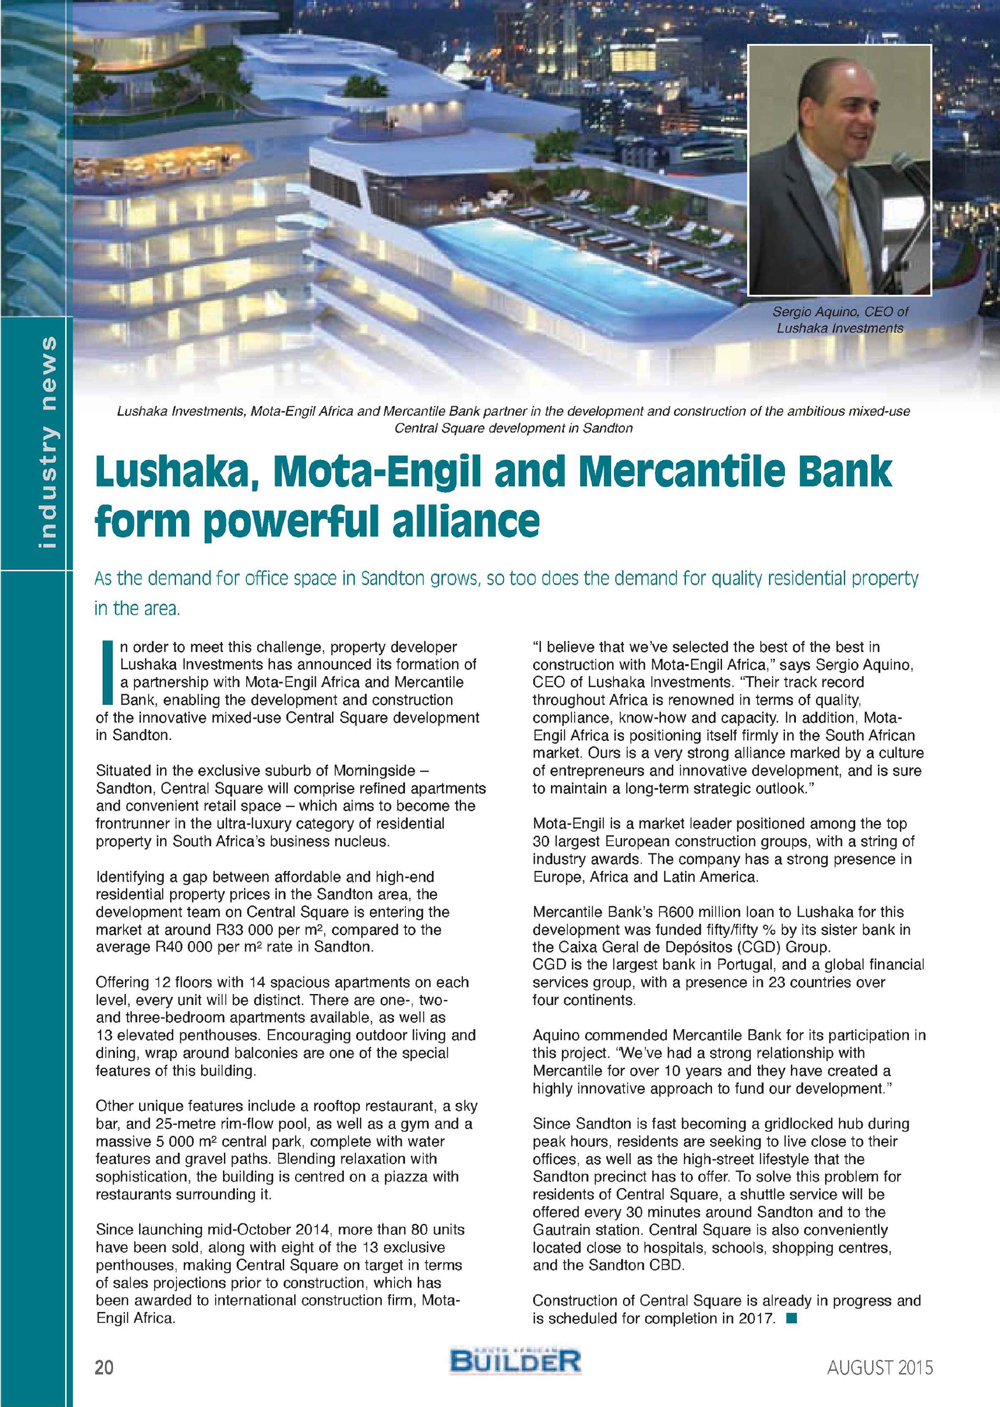 Lushaka-Mota-Engil-and-Mercantile-Bank-form-powerful-alliance